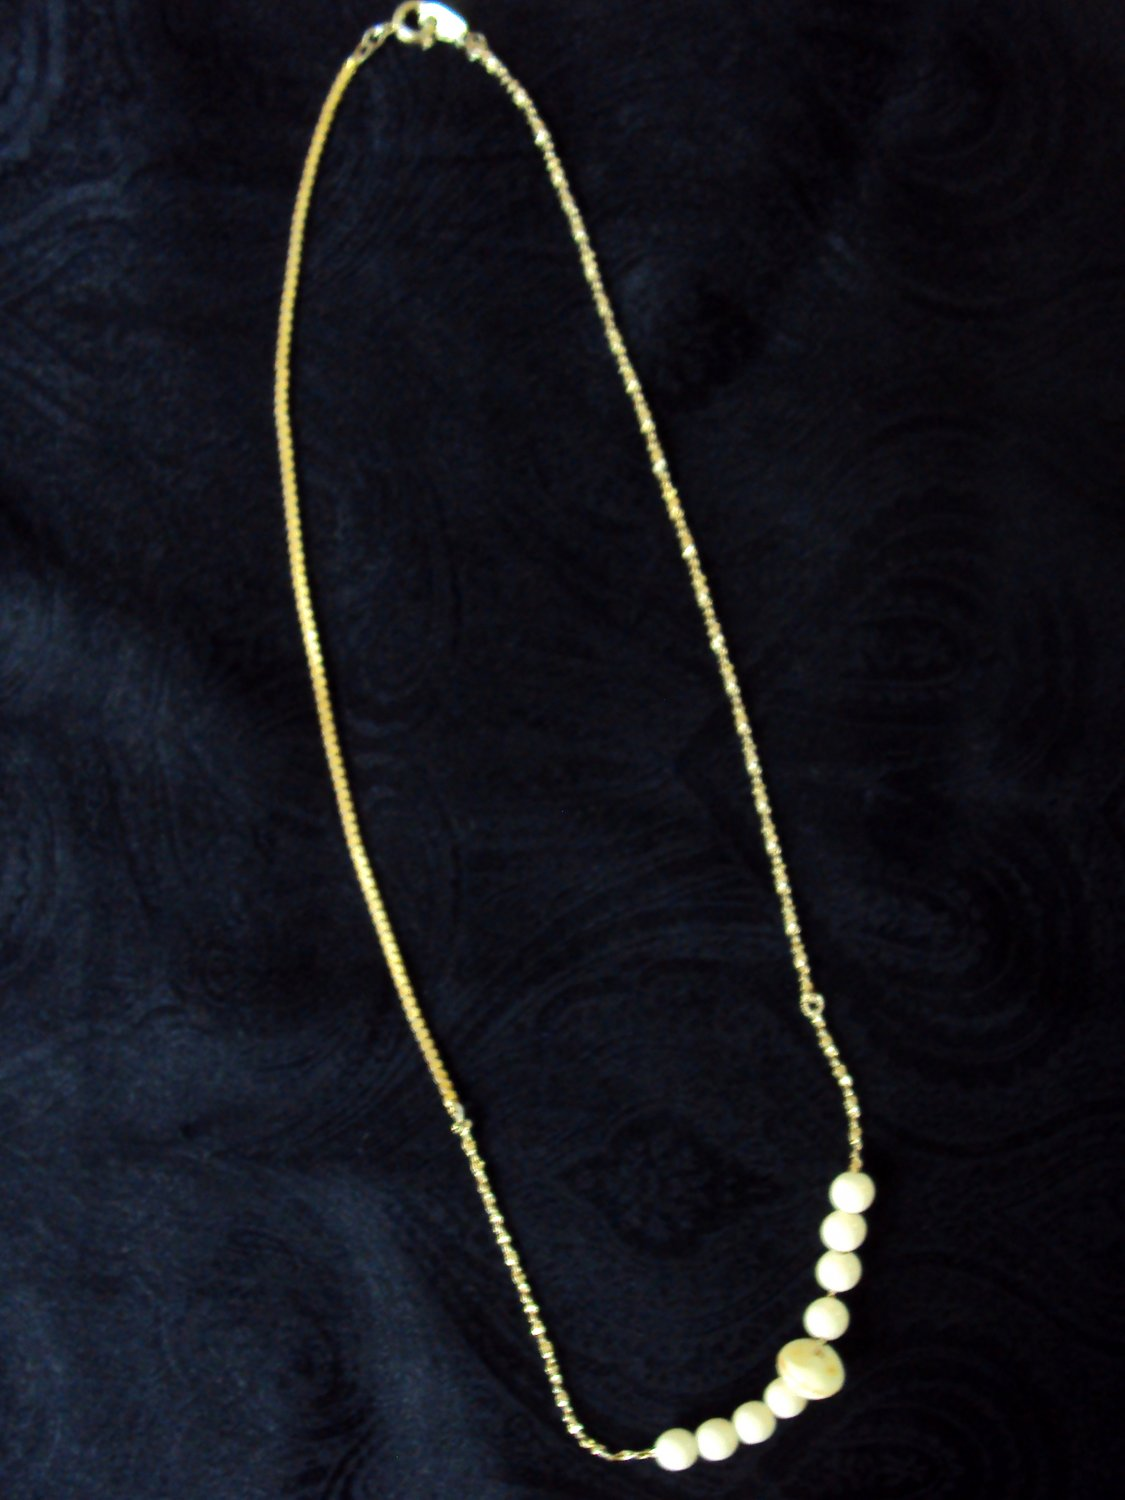 Asymmetrical necklace with cream colored beads, 18 1/2 inches